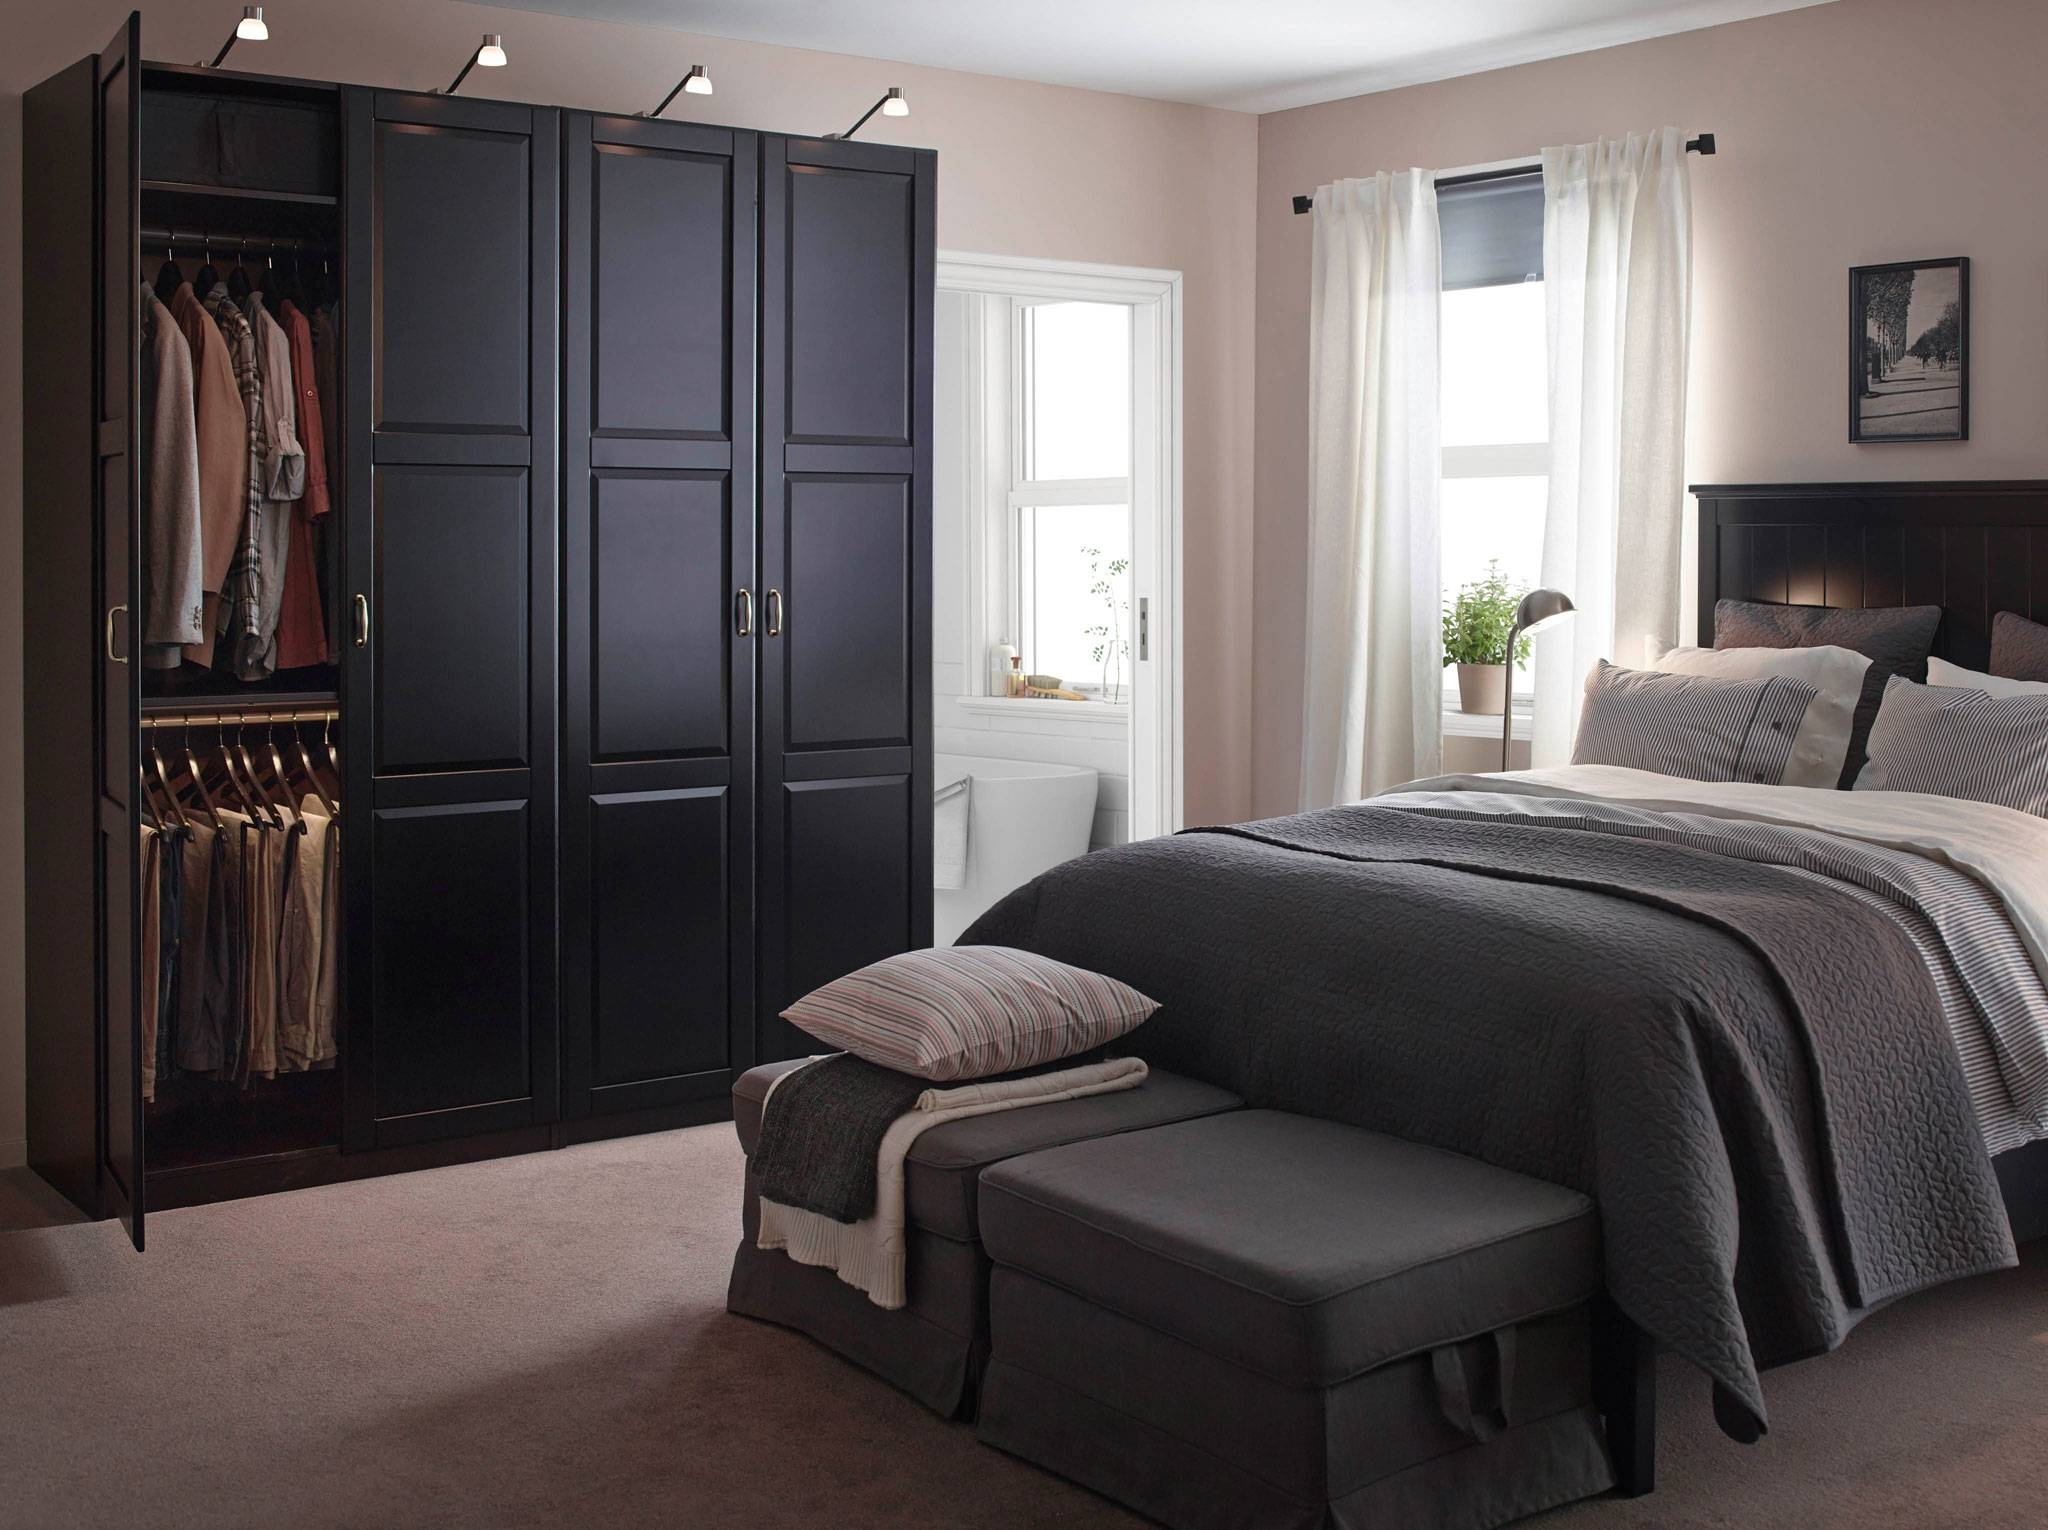 Bedroom Furniture & Ideas | Ikea inside Tall Double Rail Wardrobes (Image 2 of 30)